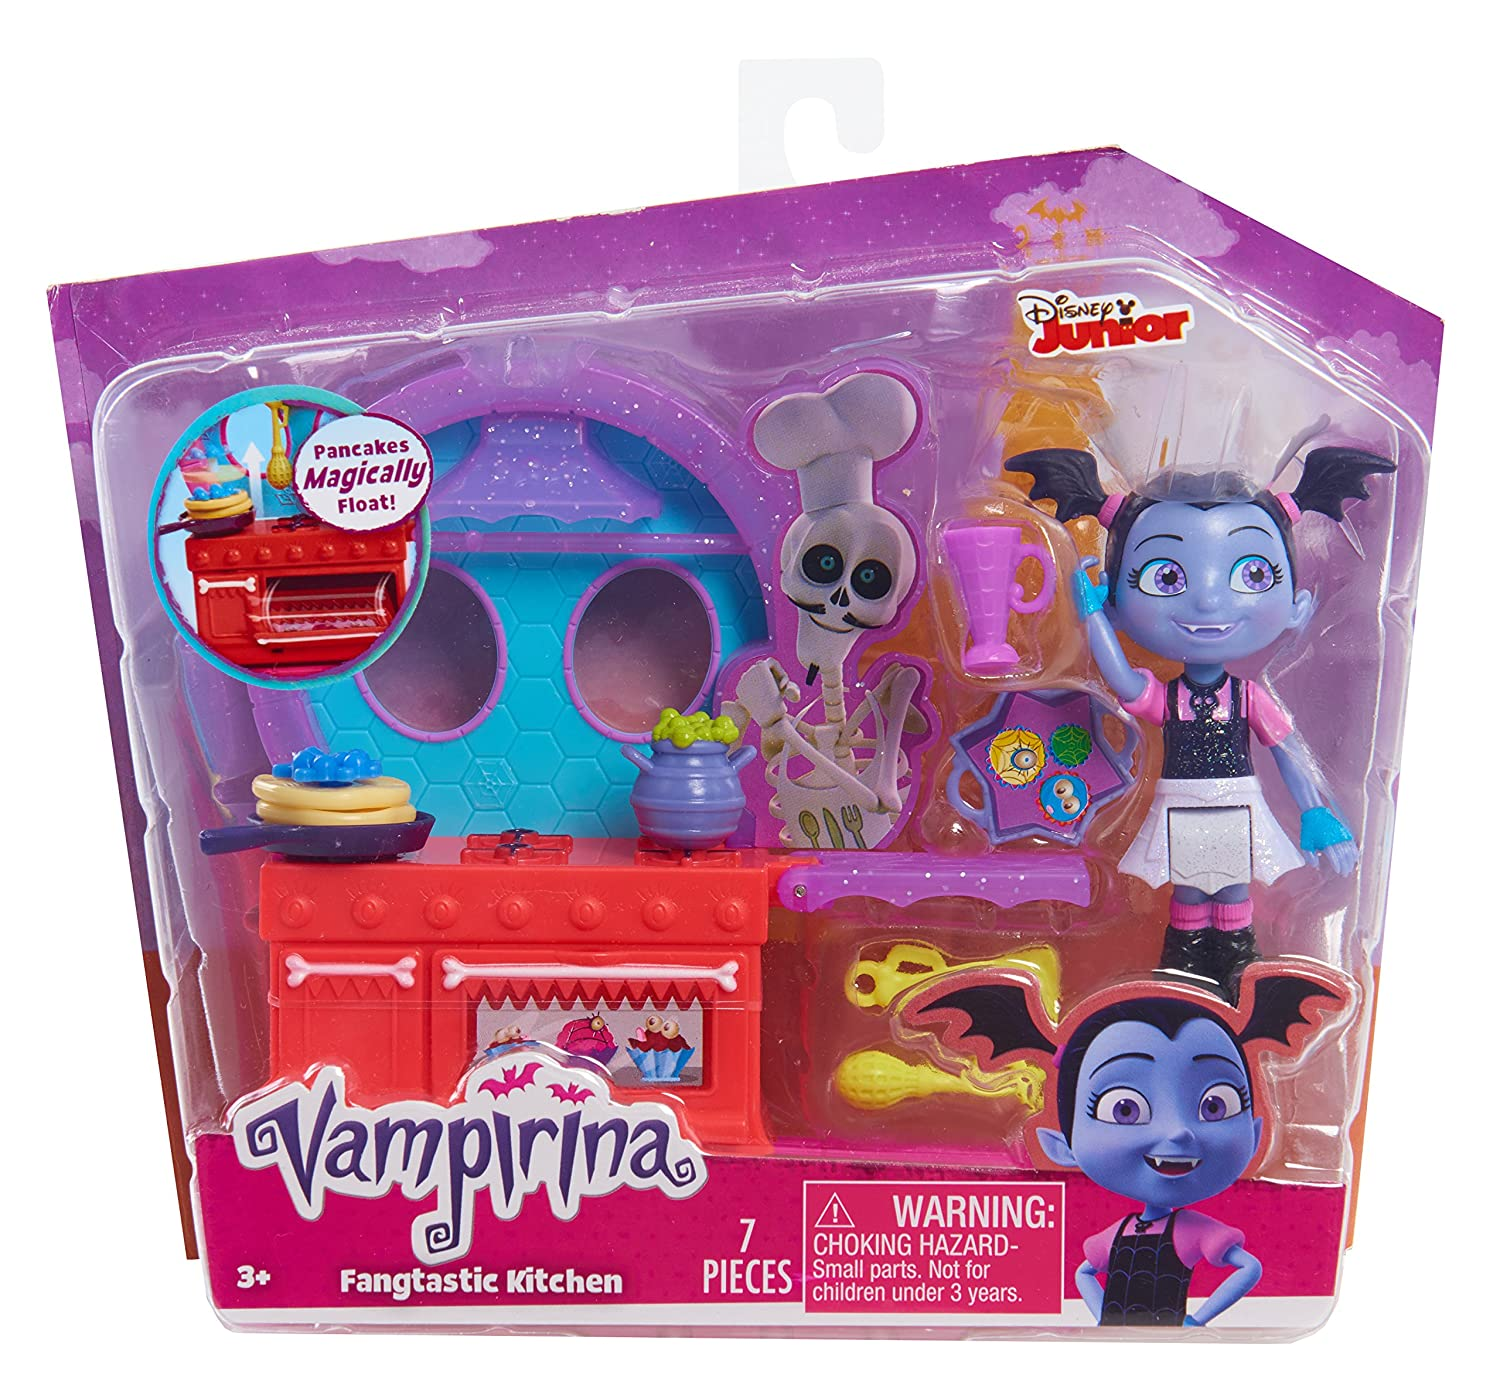 Vampirina Fangtastic Kitchen Just Play